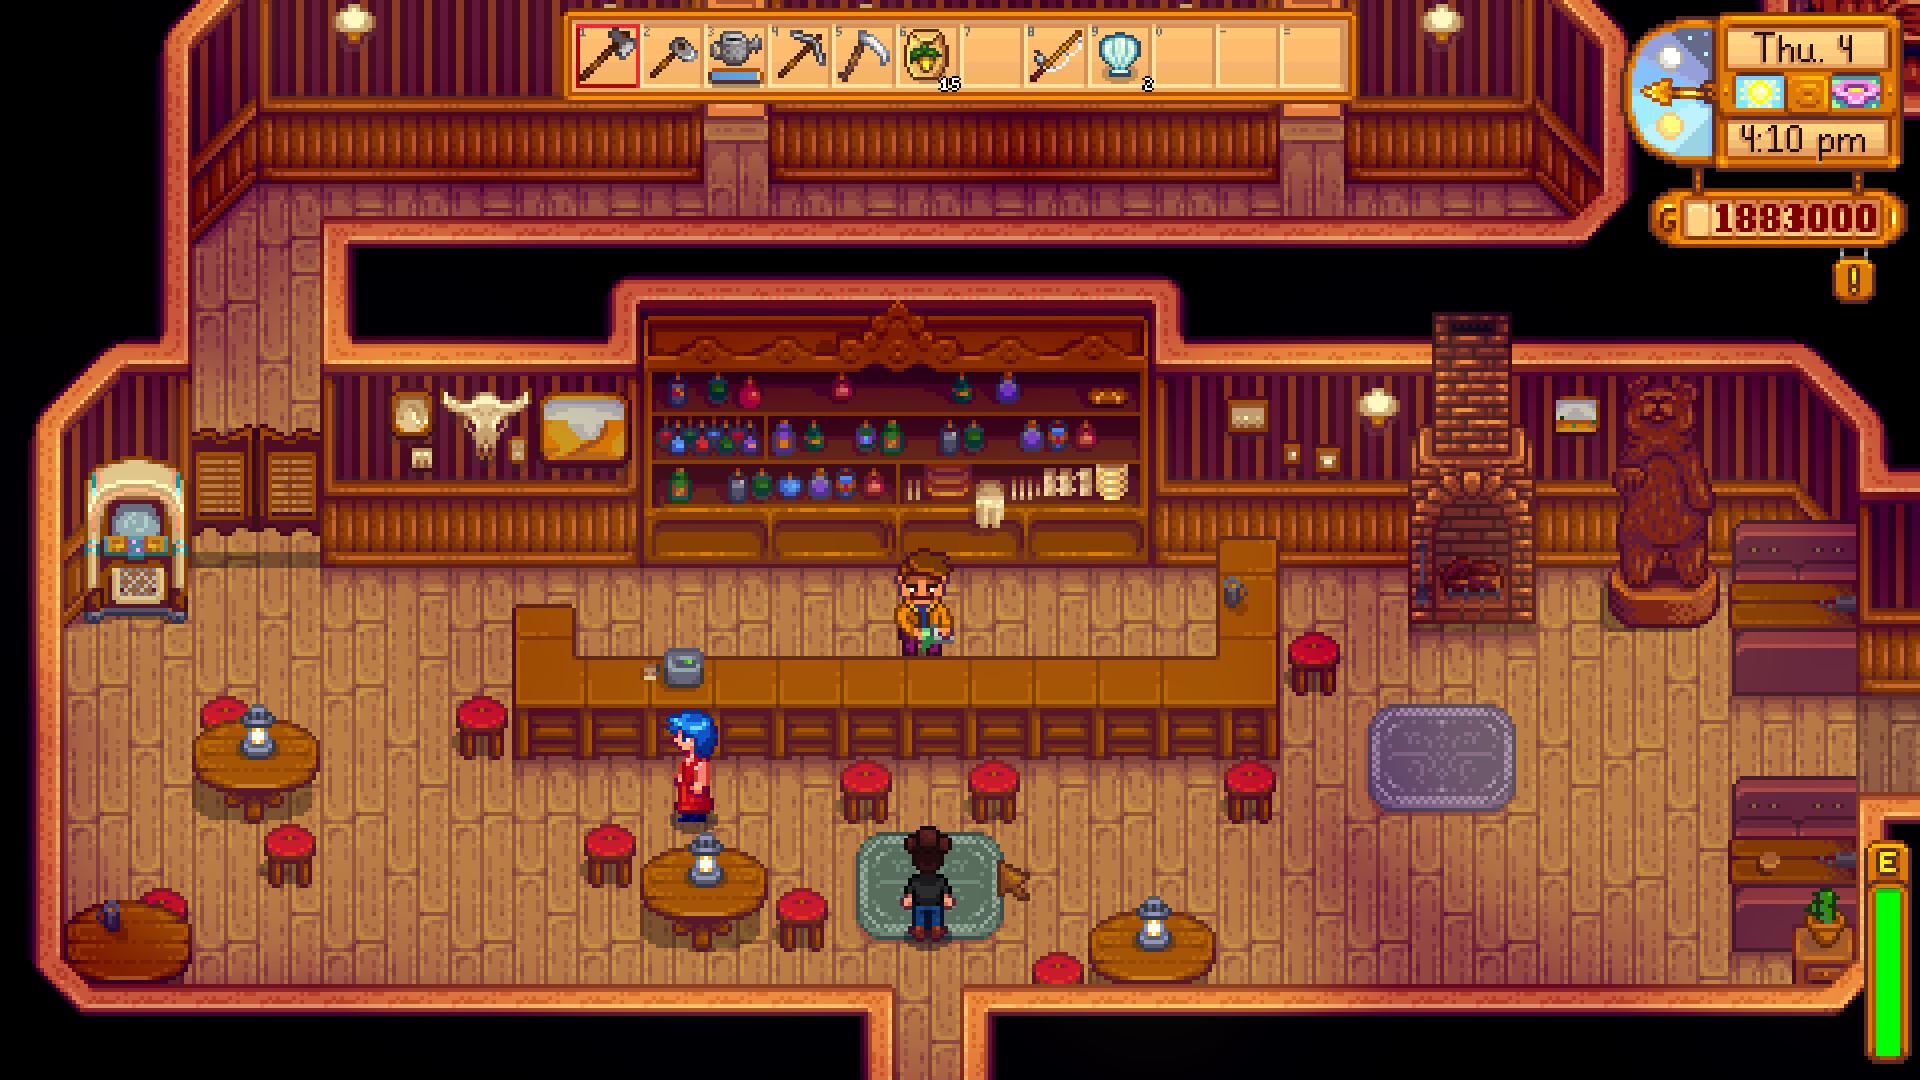 How to Romance Emily in Stardew Valley